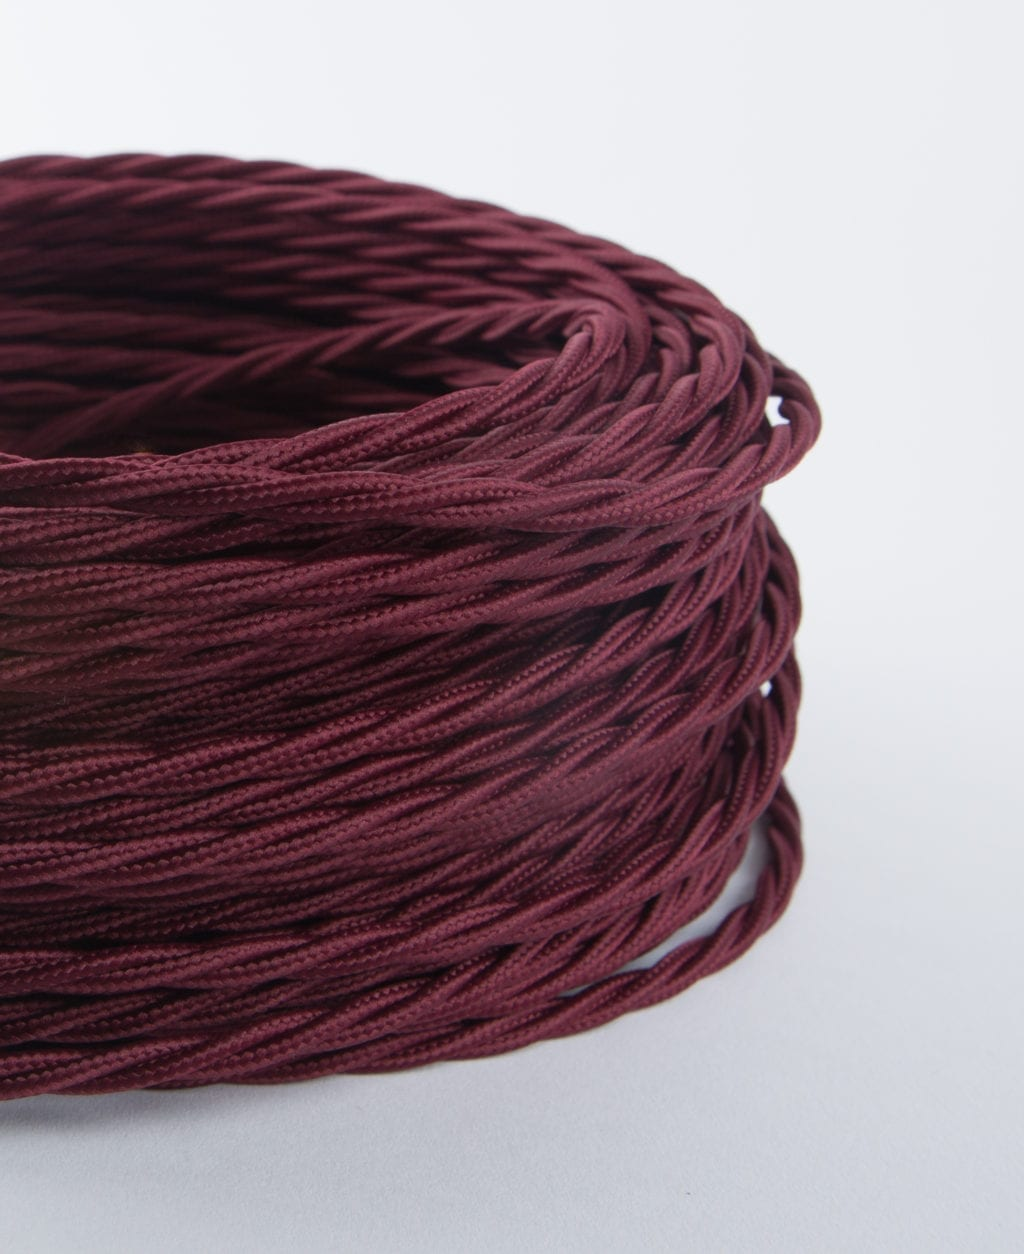 closeup of burgundy twisted fabric cable coil against white background